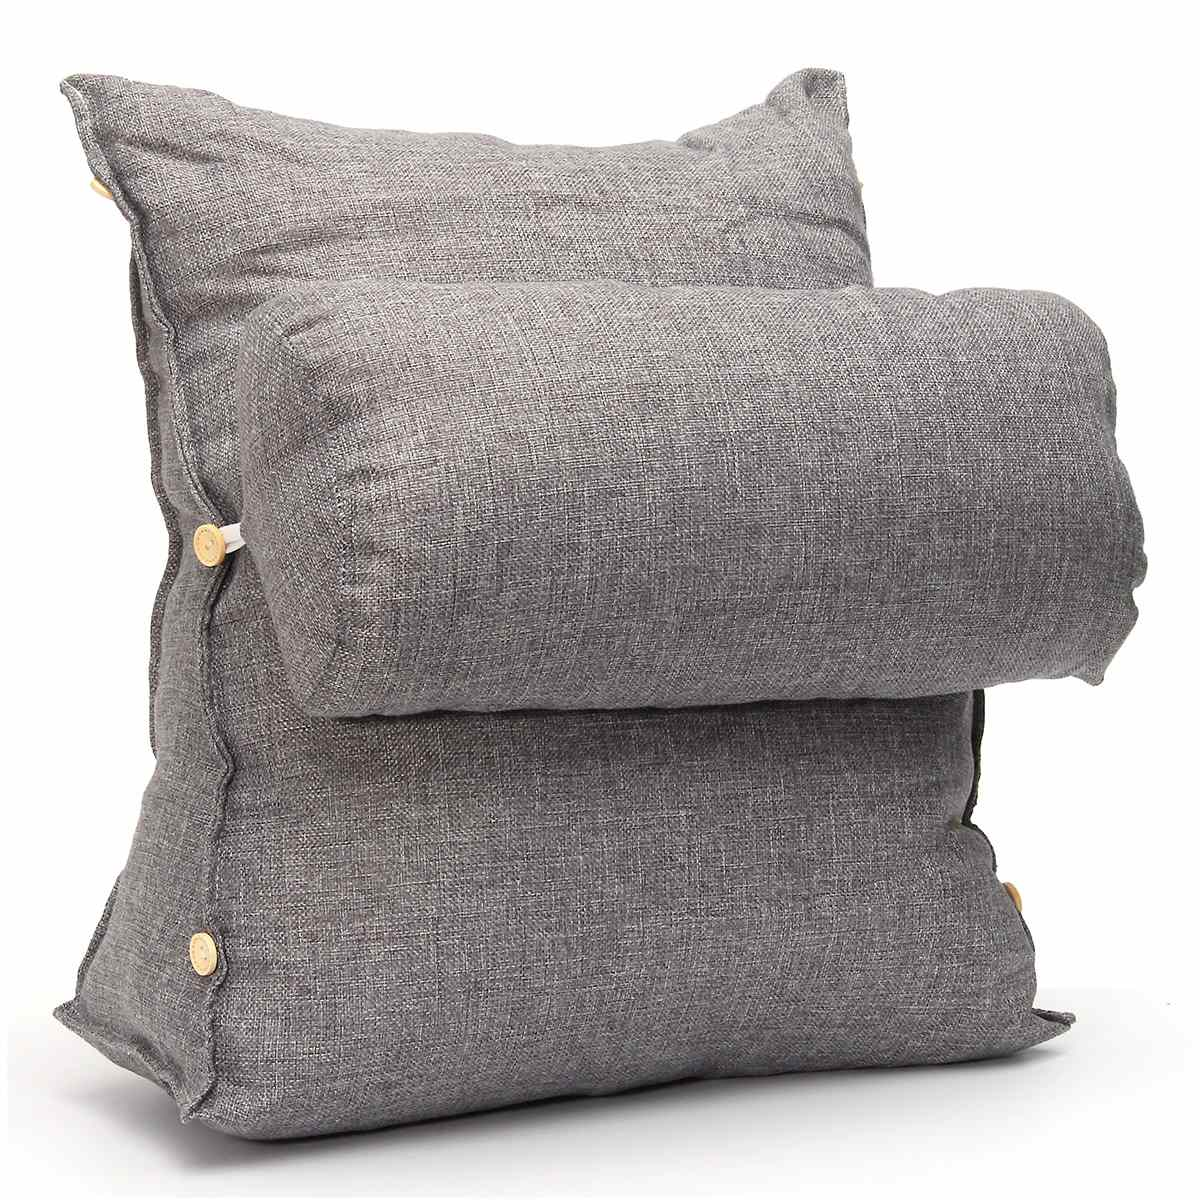 Corduroy Bed Rest Pillow - Zippered sofa bed pillow chair rest neck support cushion fip pillow lumbar cervical protection cushion pad